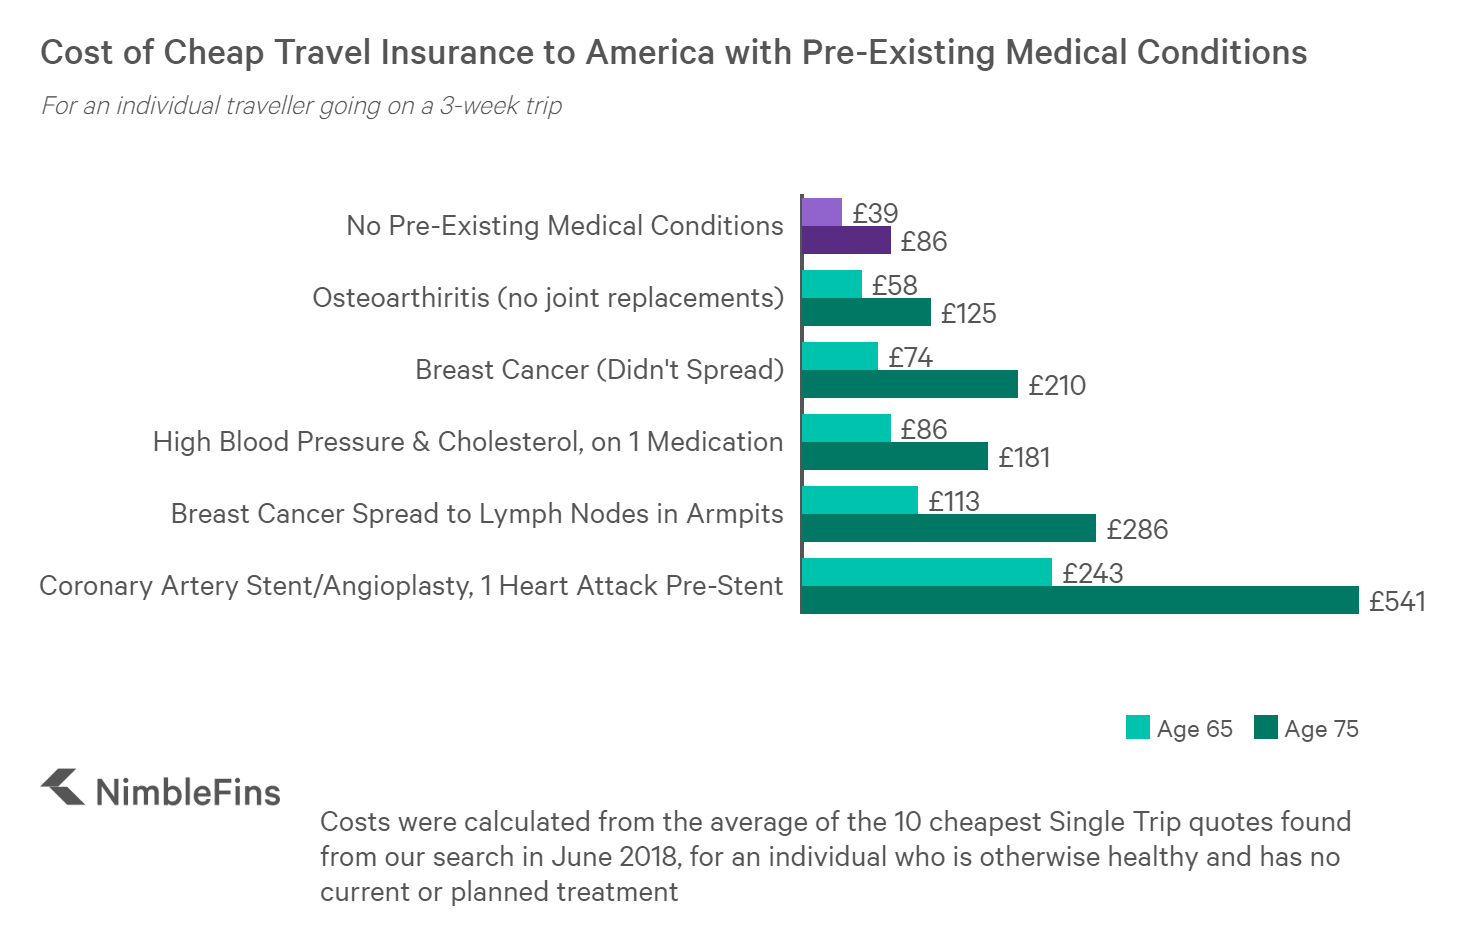 chart showing the cost of travel insurance to america with pre-existing medical conditions